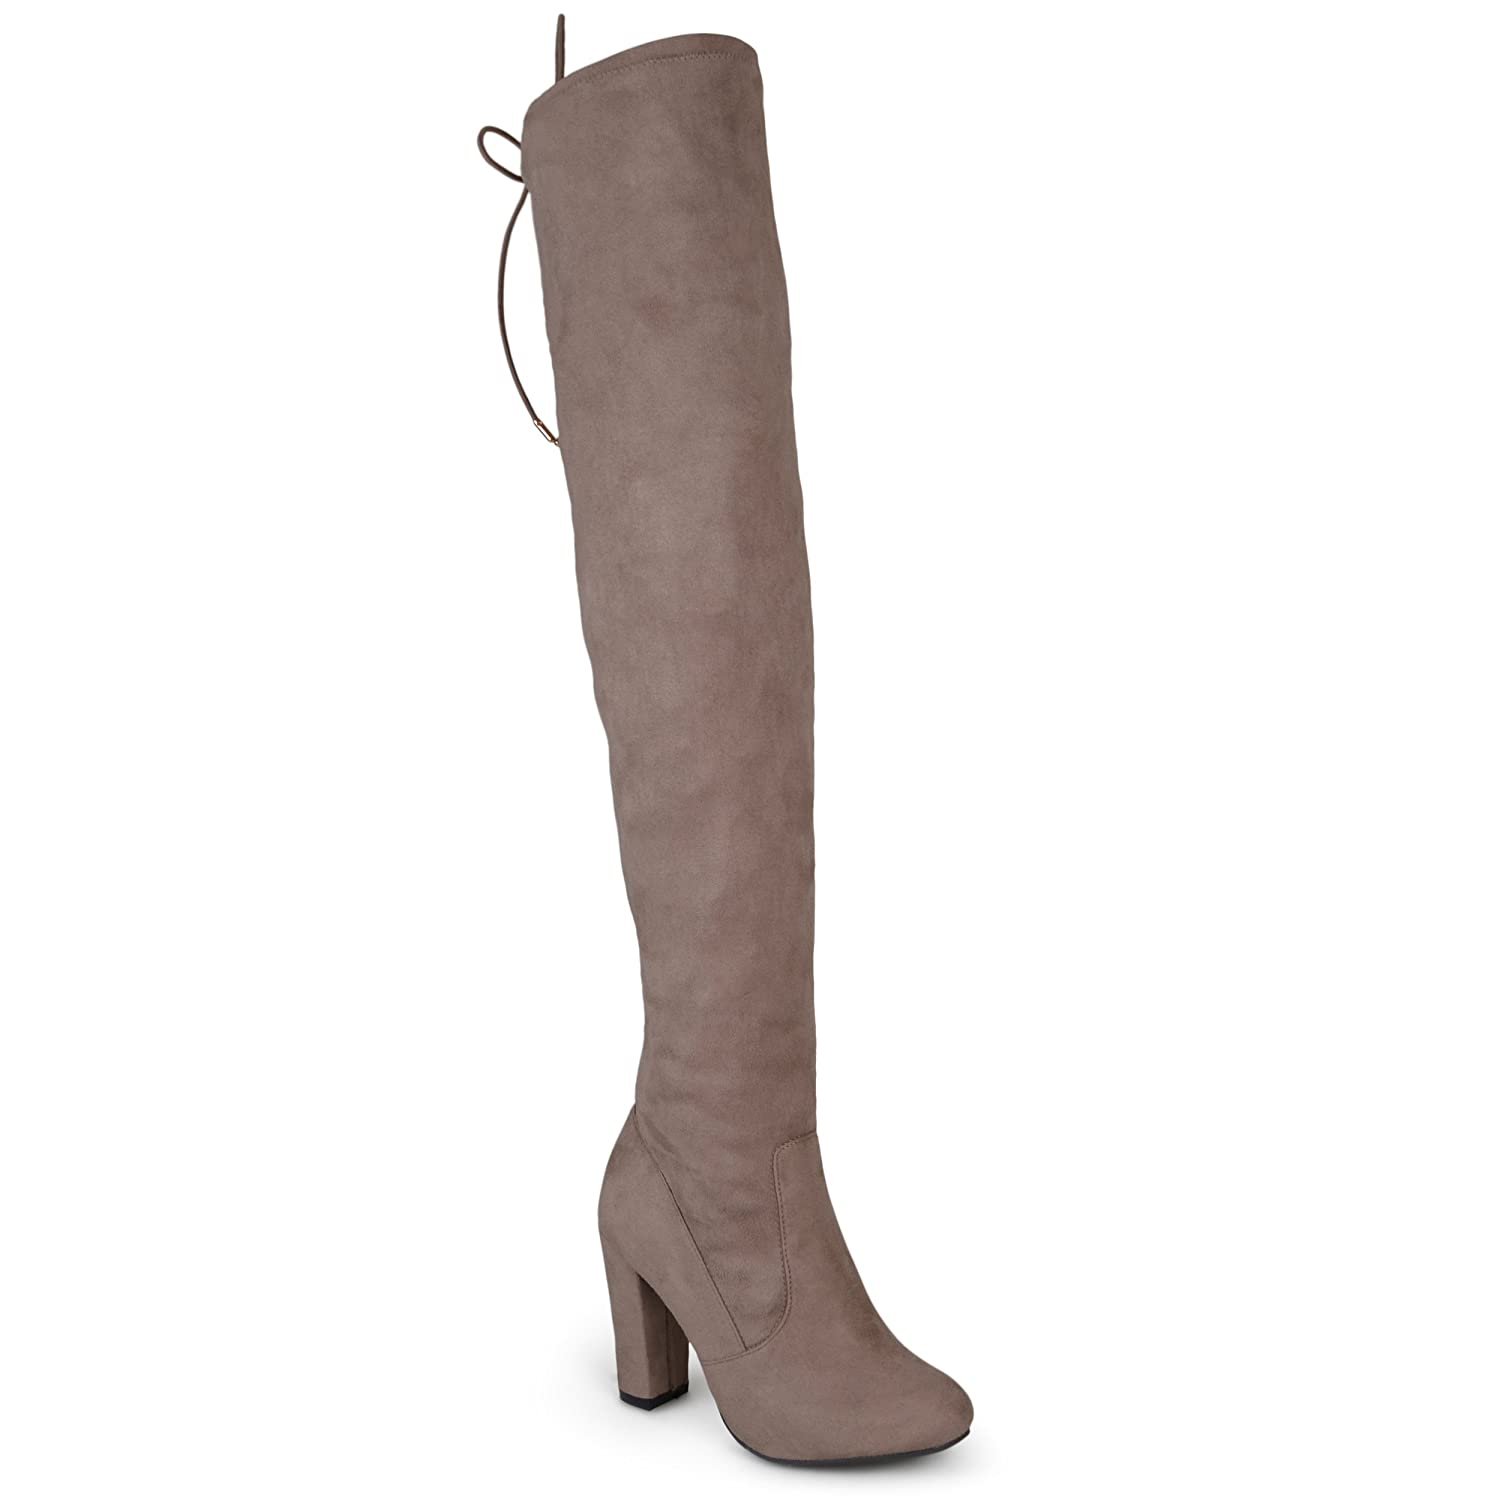 Journee Collection Womens Regular and Wide-Calf Faux Suede Over-The-Knee Boots B01I5IUURG 11 C/D US|Taupe